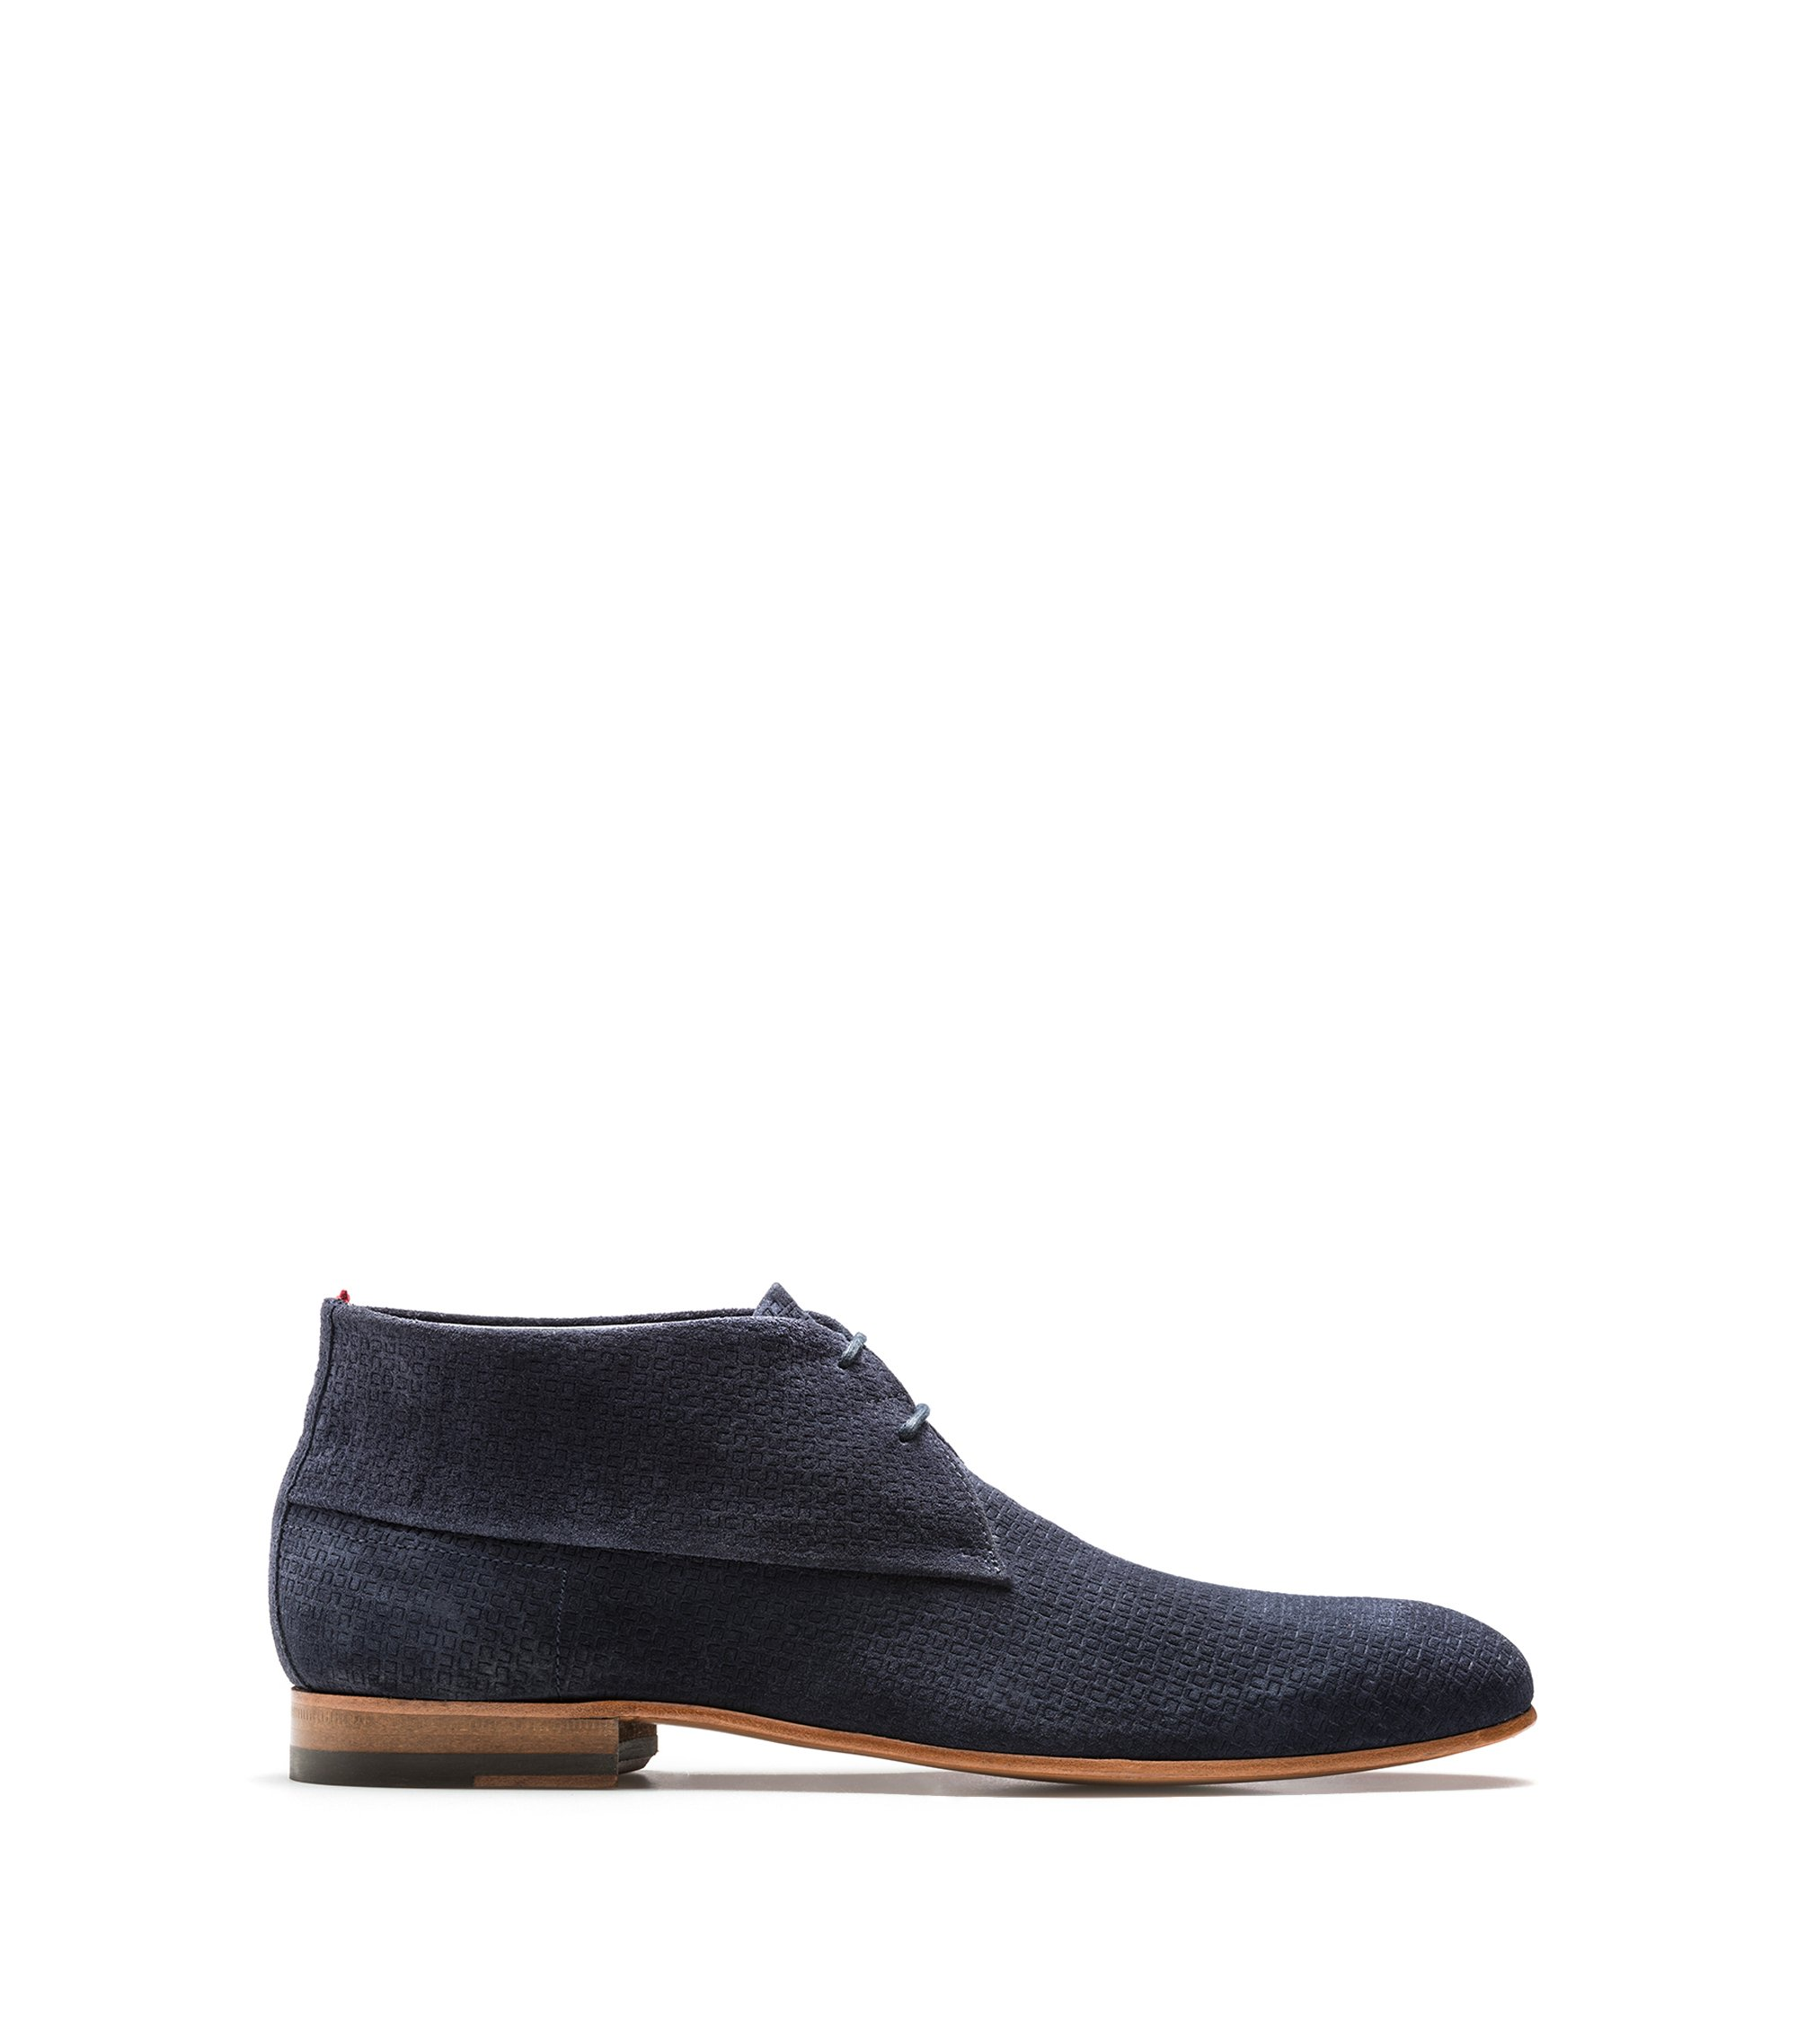 Bottines Chelsea de type jodhpur en cuir poli230.00HUGO BOSS